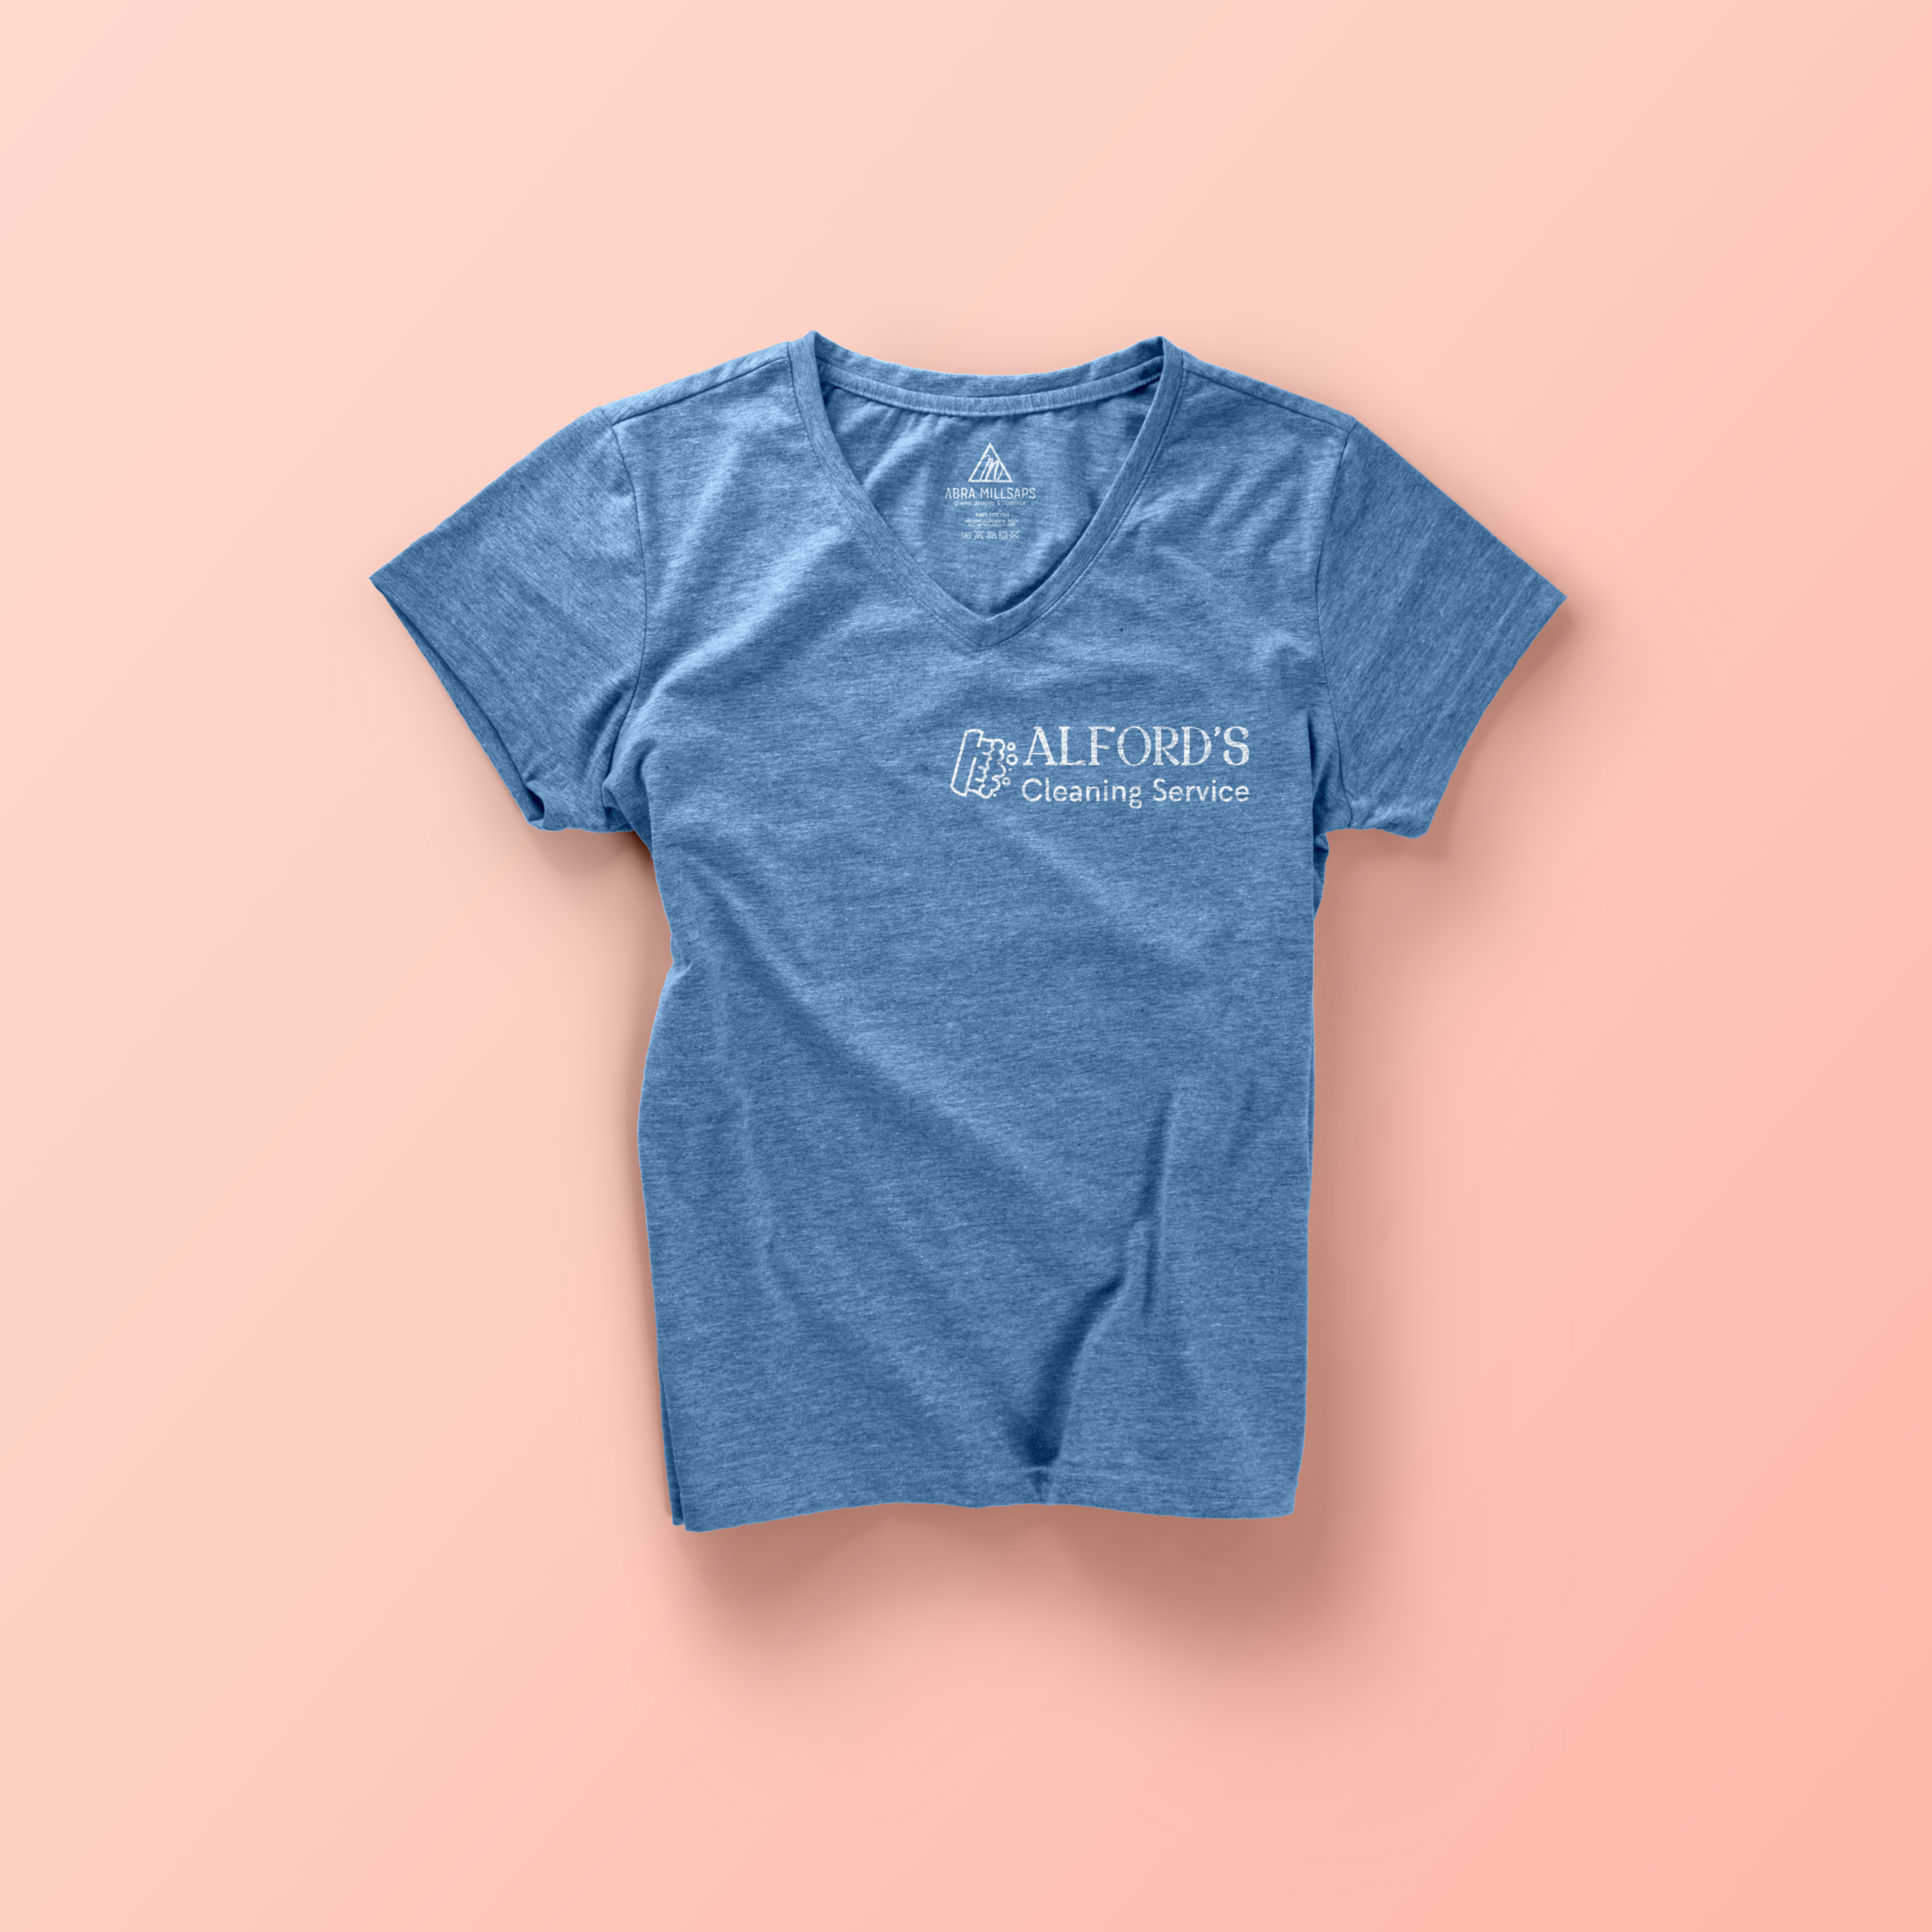 Alford's Cleaning Service Shirt Mockup.png